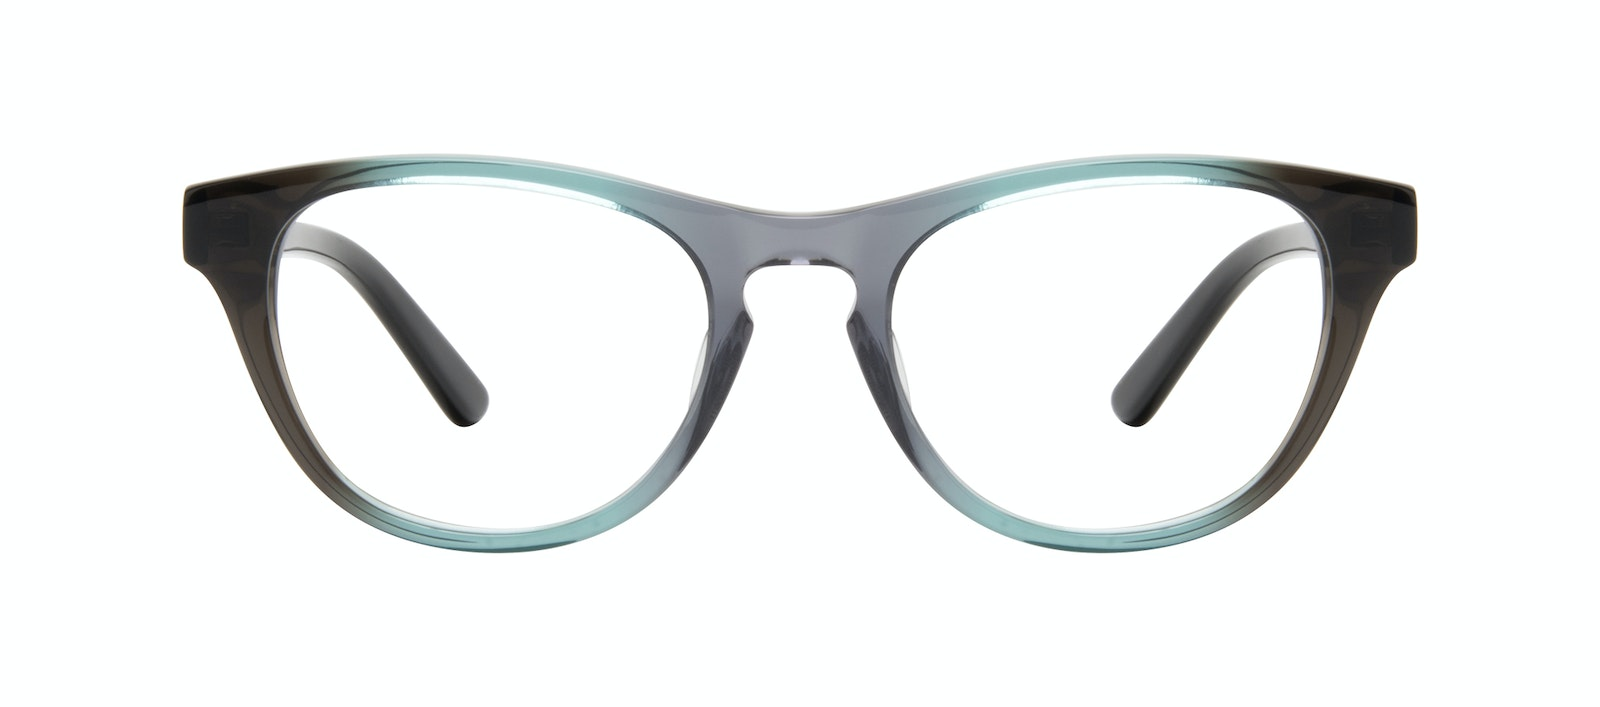 Affordable Fashion Glasses Cat Eye Eyeglasses Women Selfie Seafoam Front